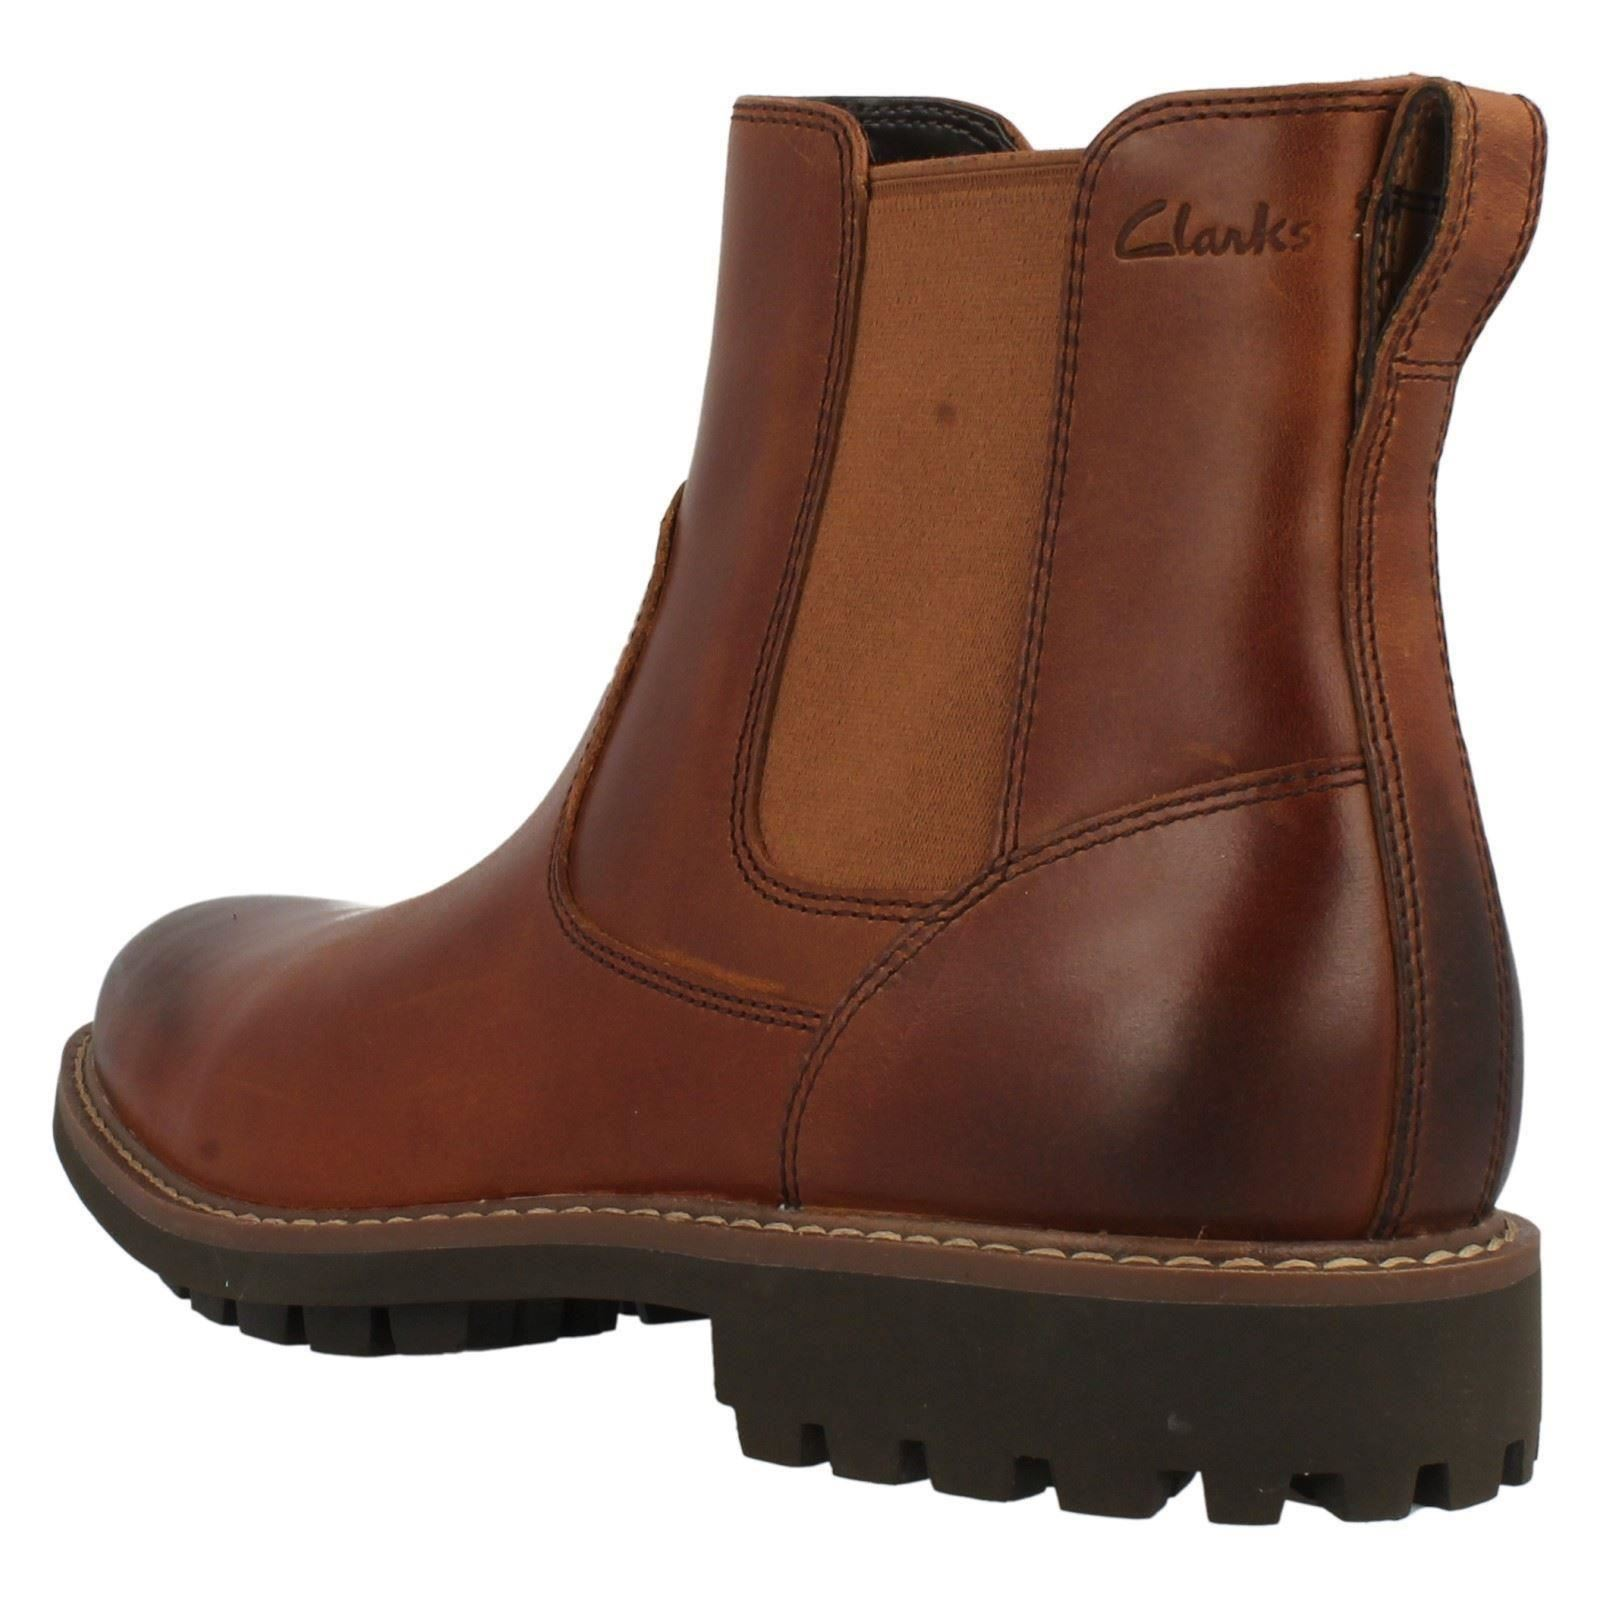 Looking for a pair of men's Chelsea boots for the fall and winter seasons? With all colors and sizes and variety of styles and features, we have the best collection of fashionable Chelsea boots for men.